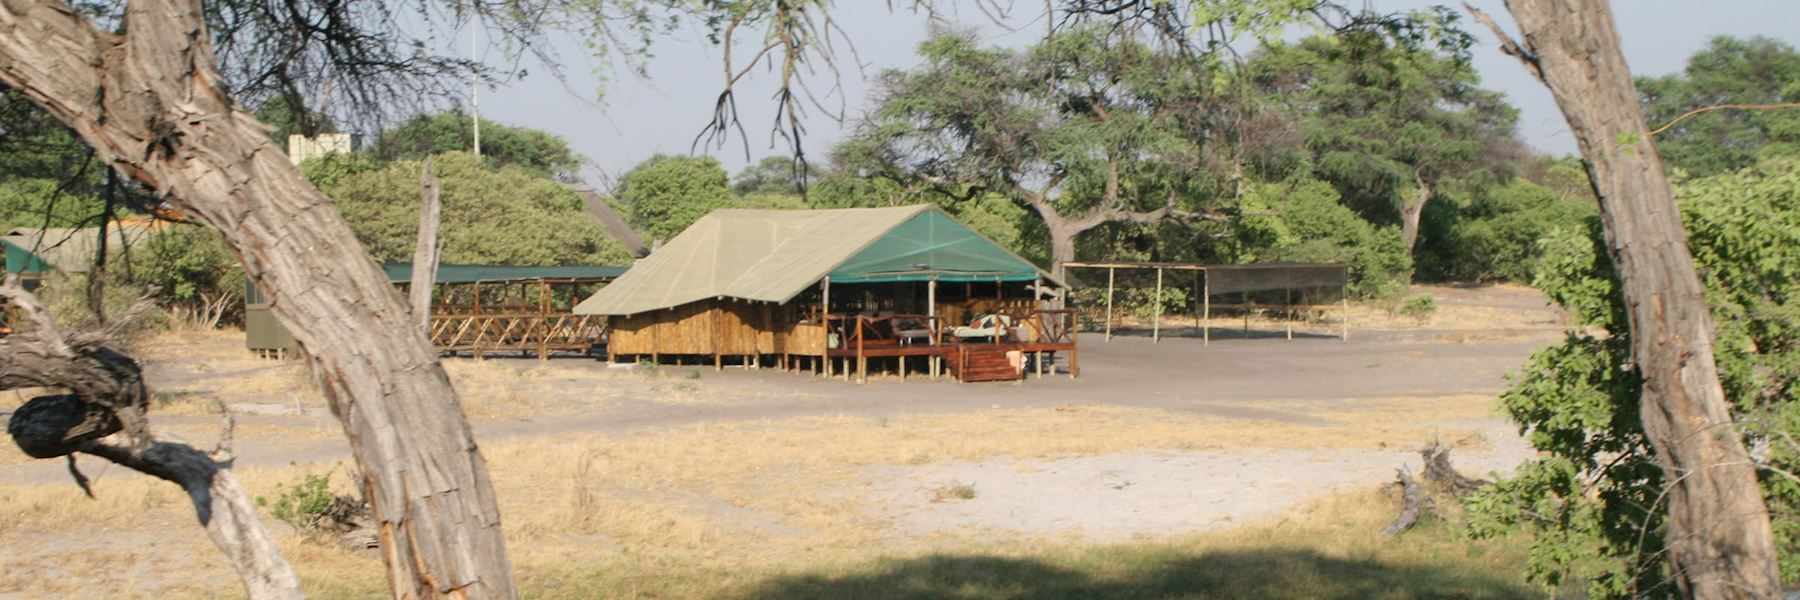 Camp Savuti